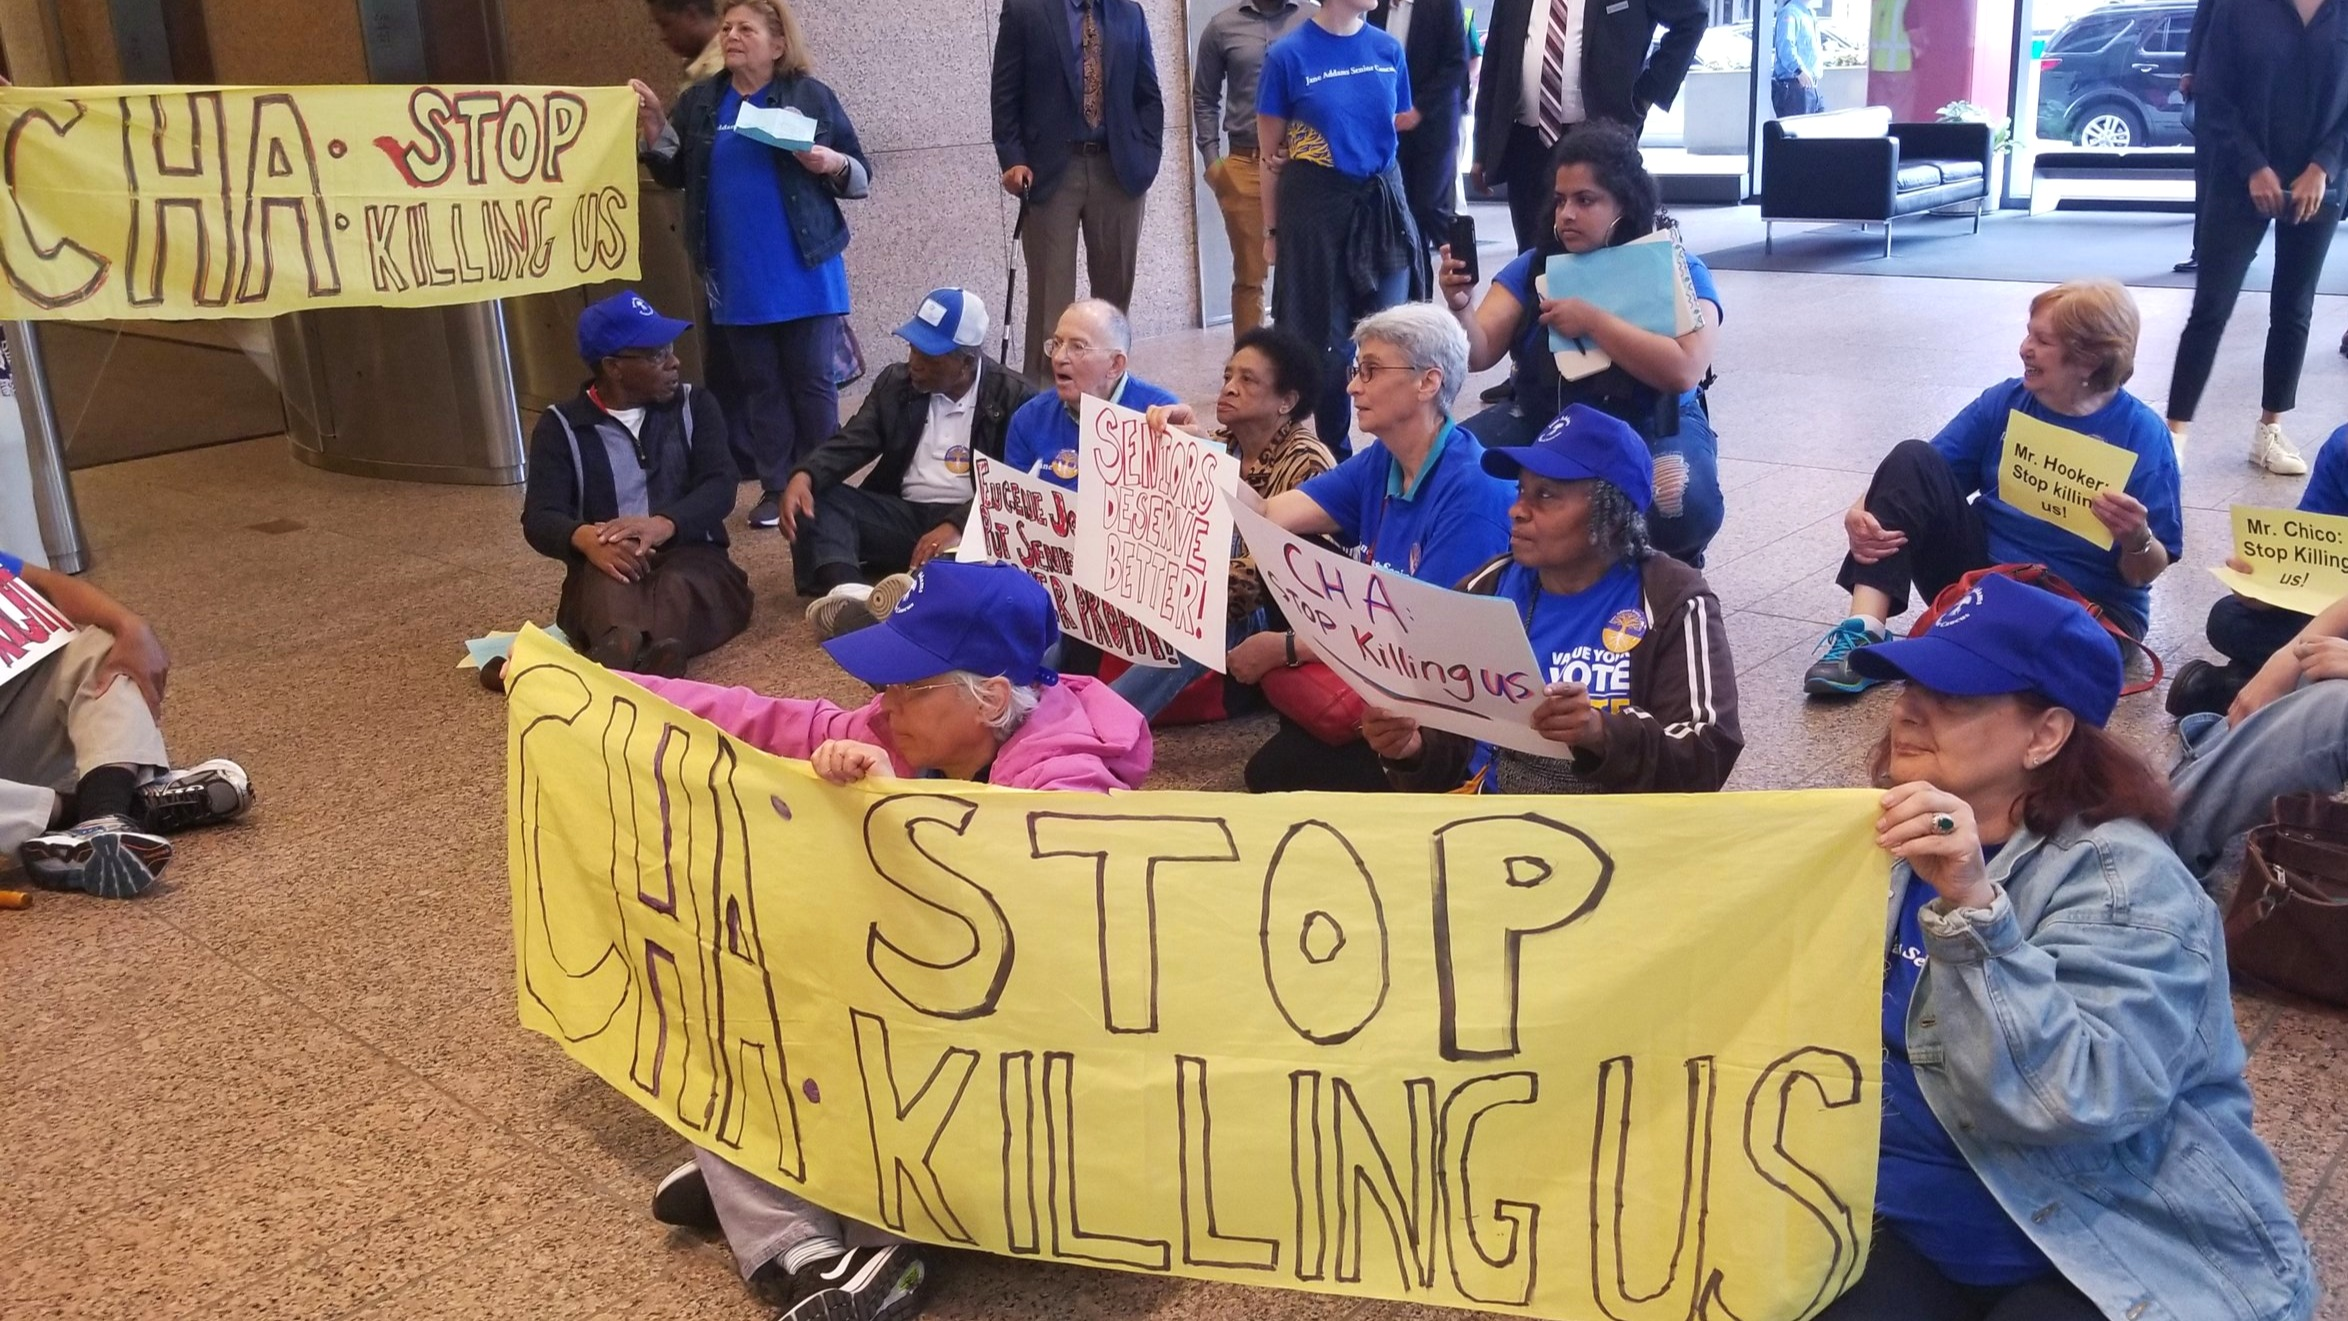 JASC leaders disrupt a Chicago Housing Authority Board meeting to demand safer living conditions in CHA buildings.